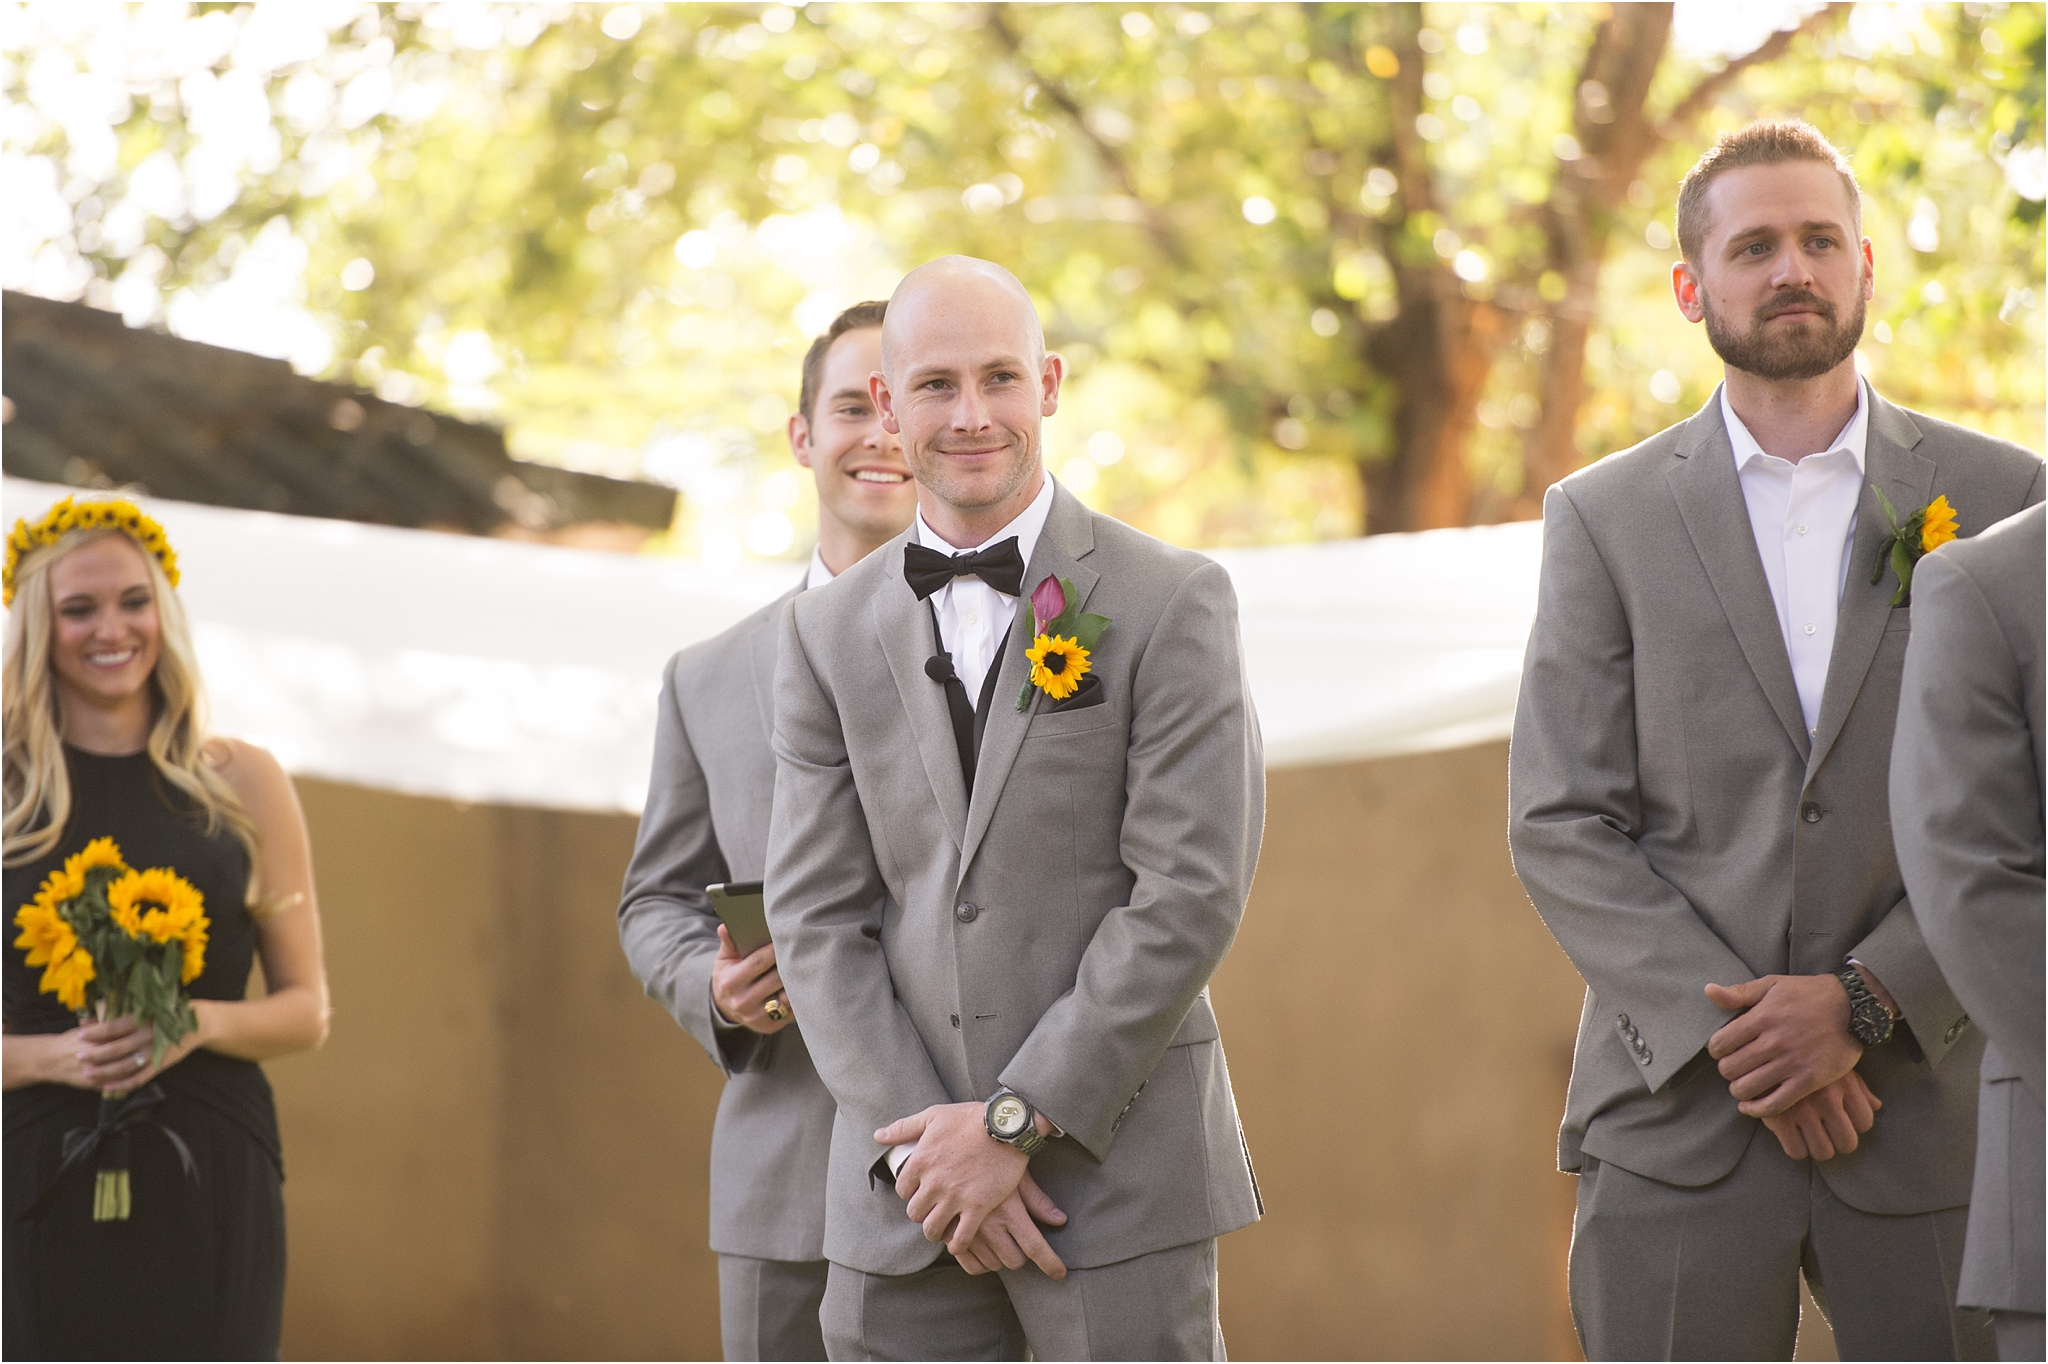 kayla kitts photography - albuquerque wedding photographer - orange september - cjohnson makeup_0027.jpg